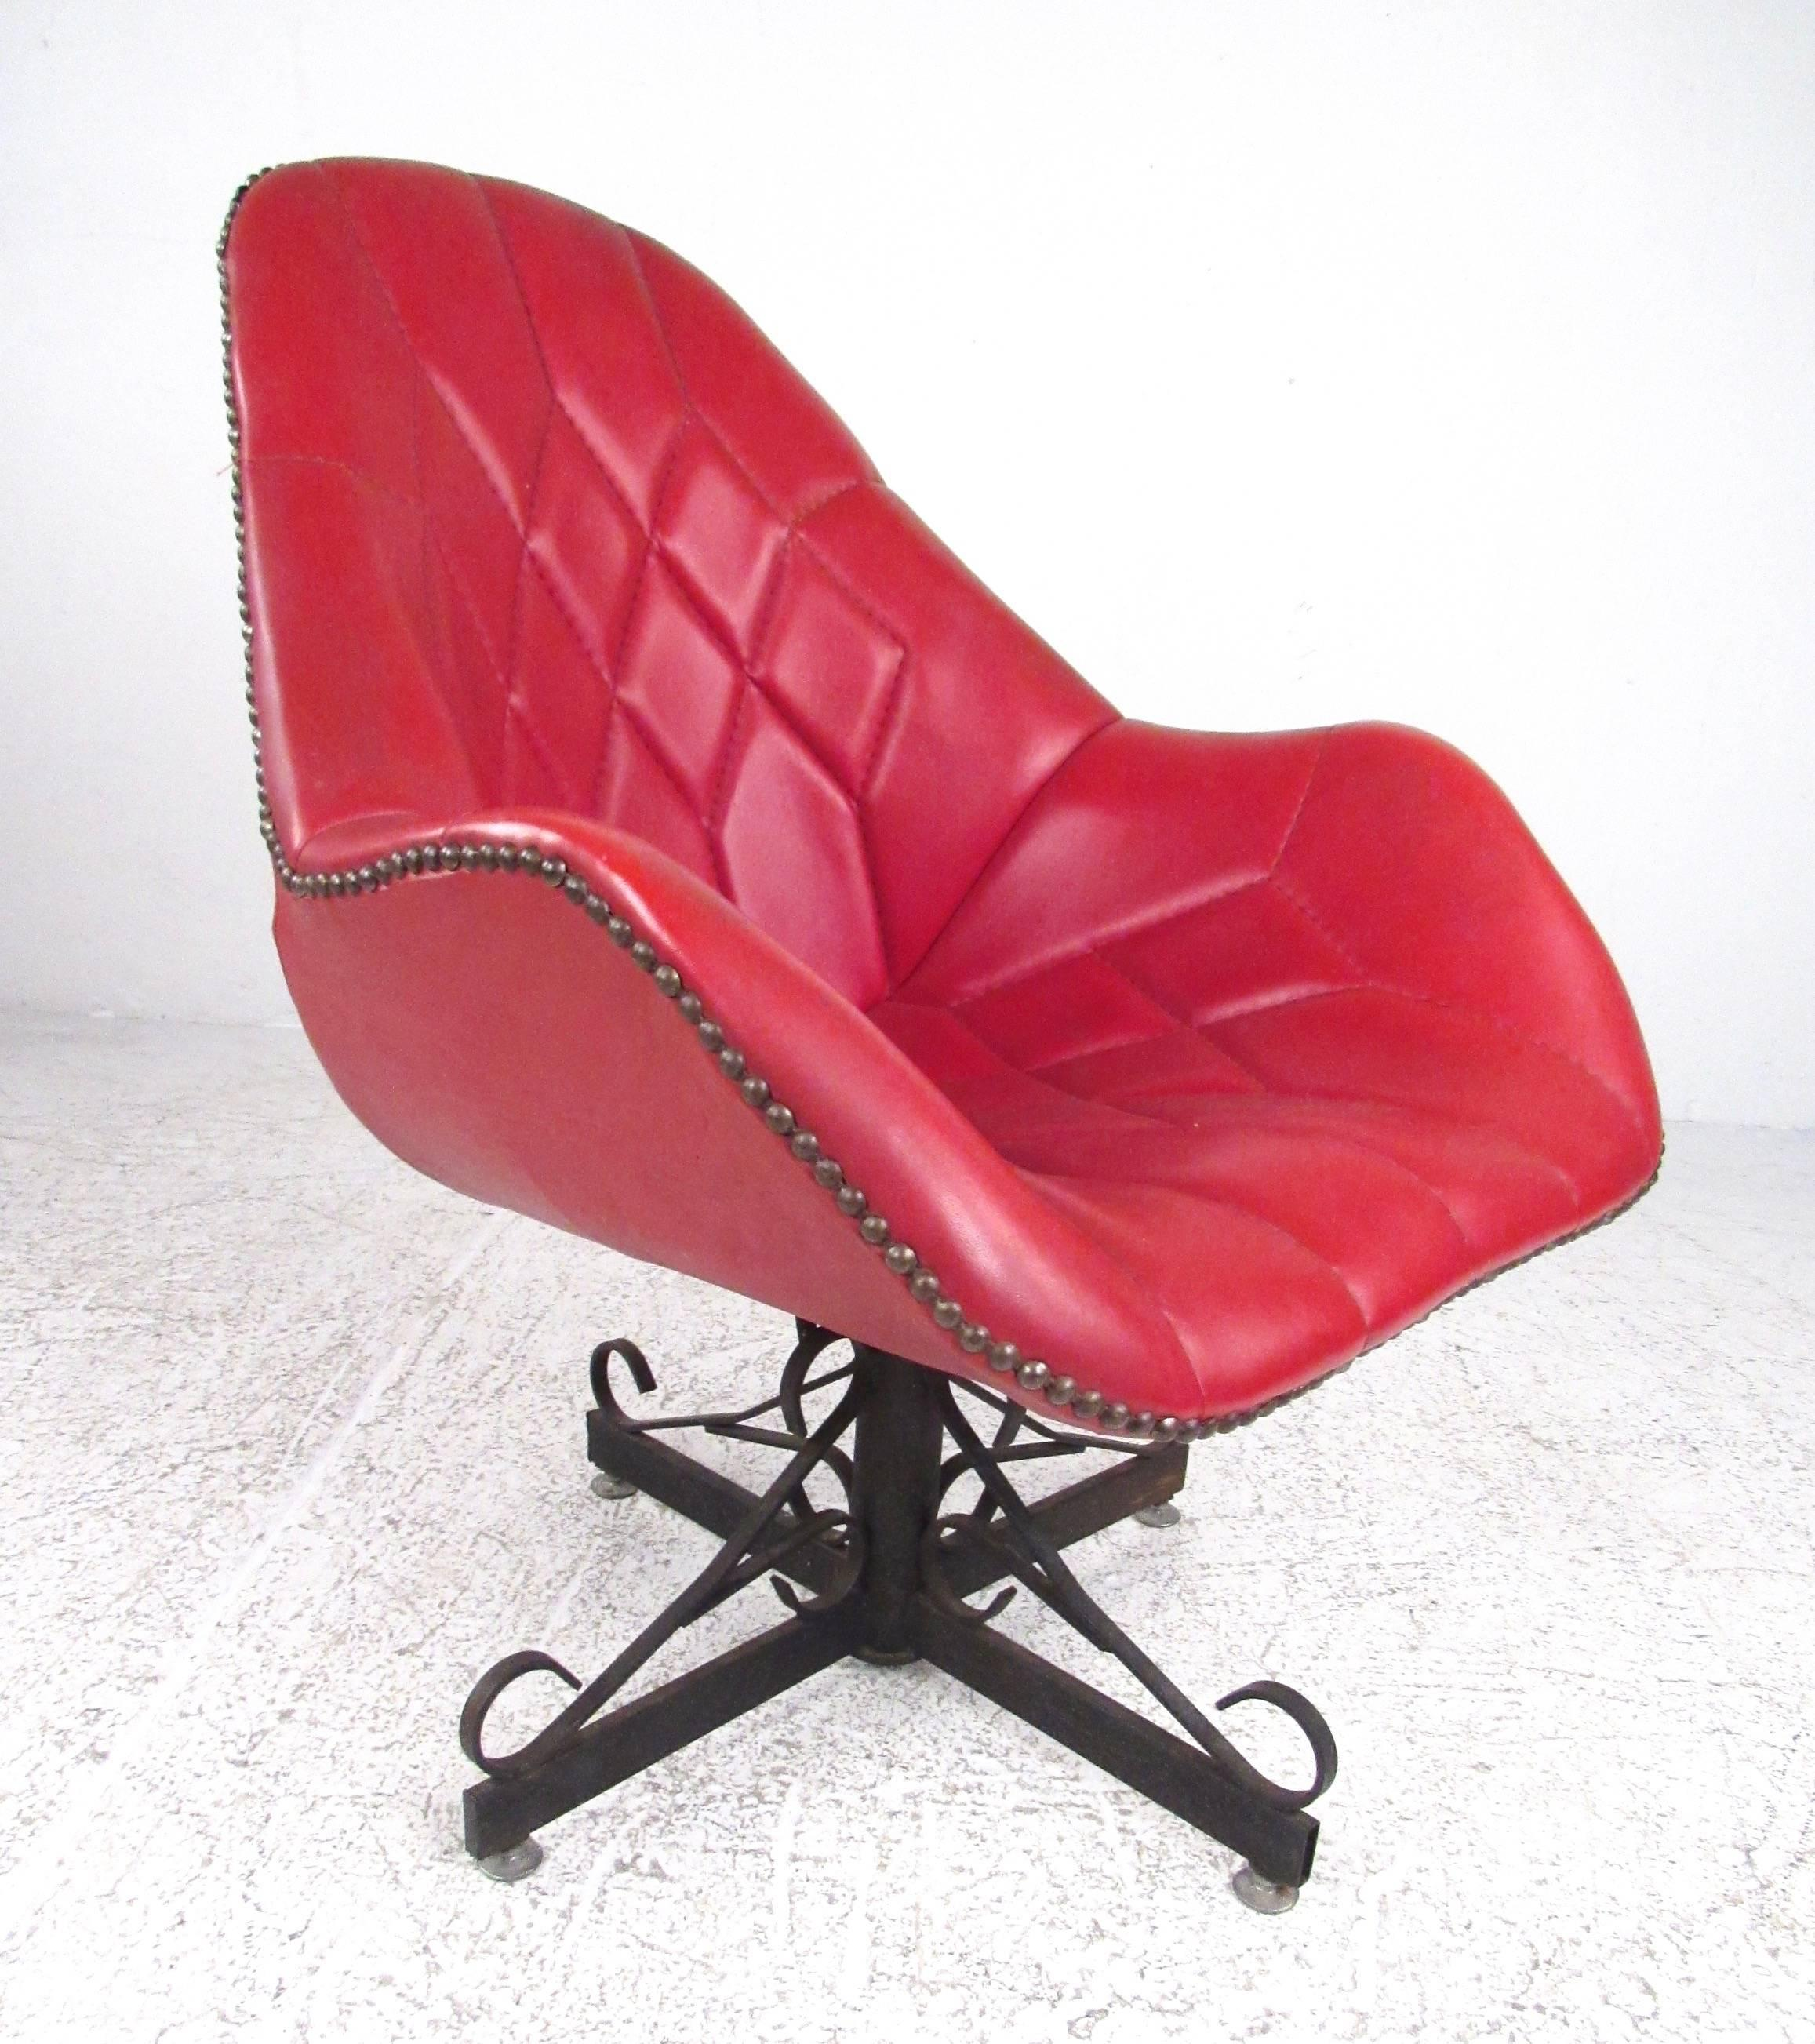 This Unique Vintage Modern Swivel Chair Features Stitched Red Vinyl With  Brass Upholstery Buttons Around The